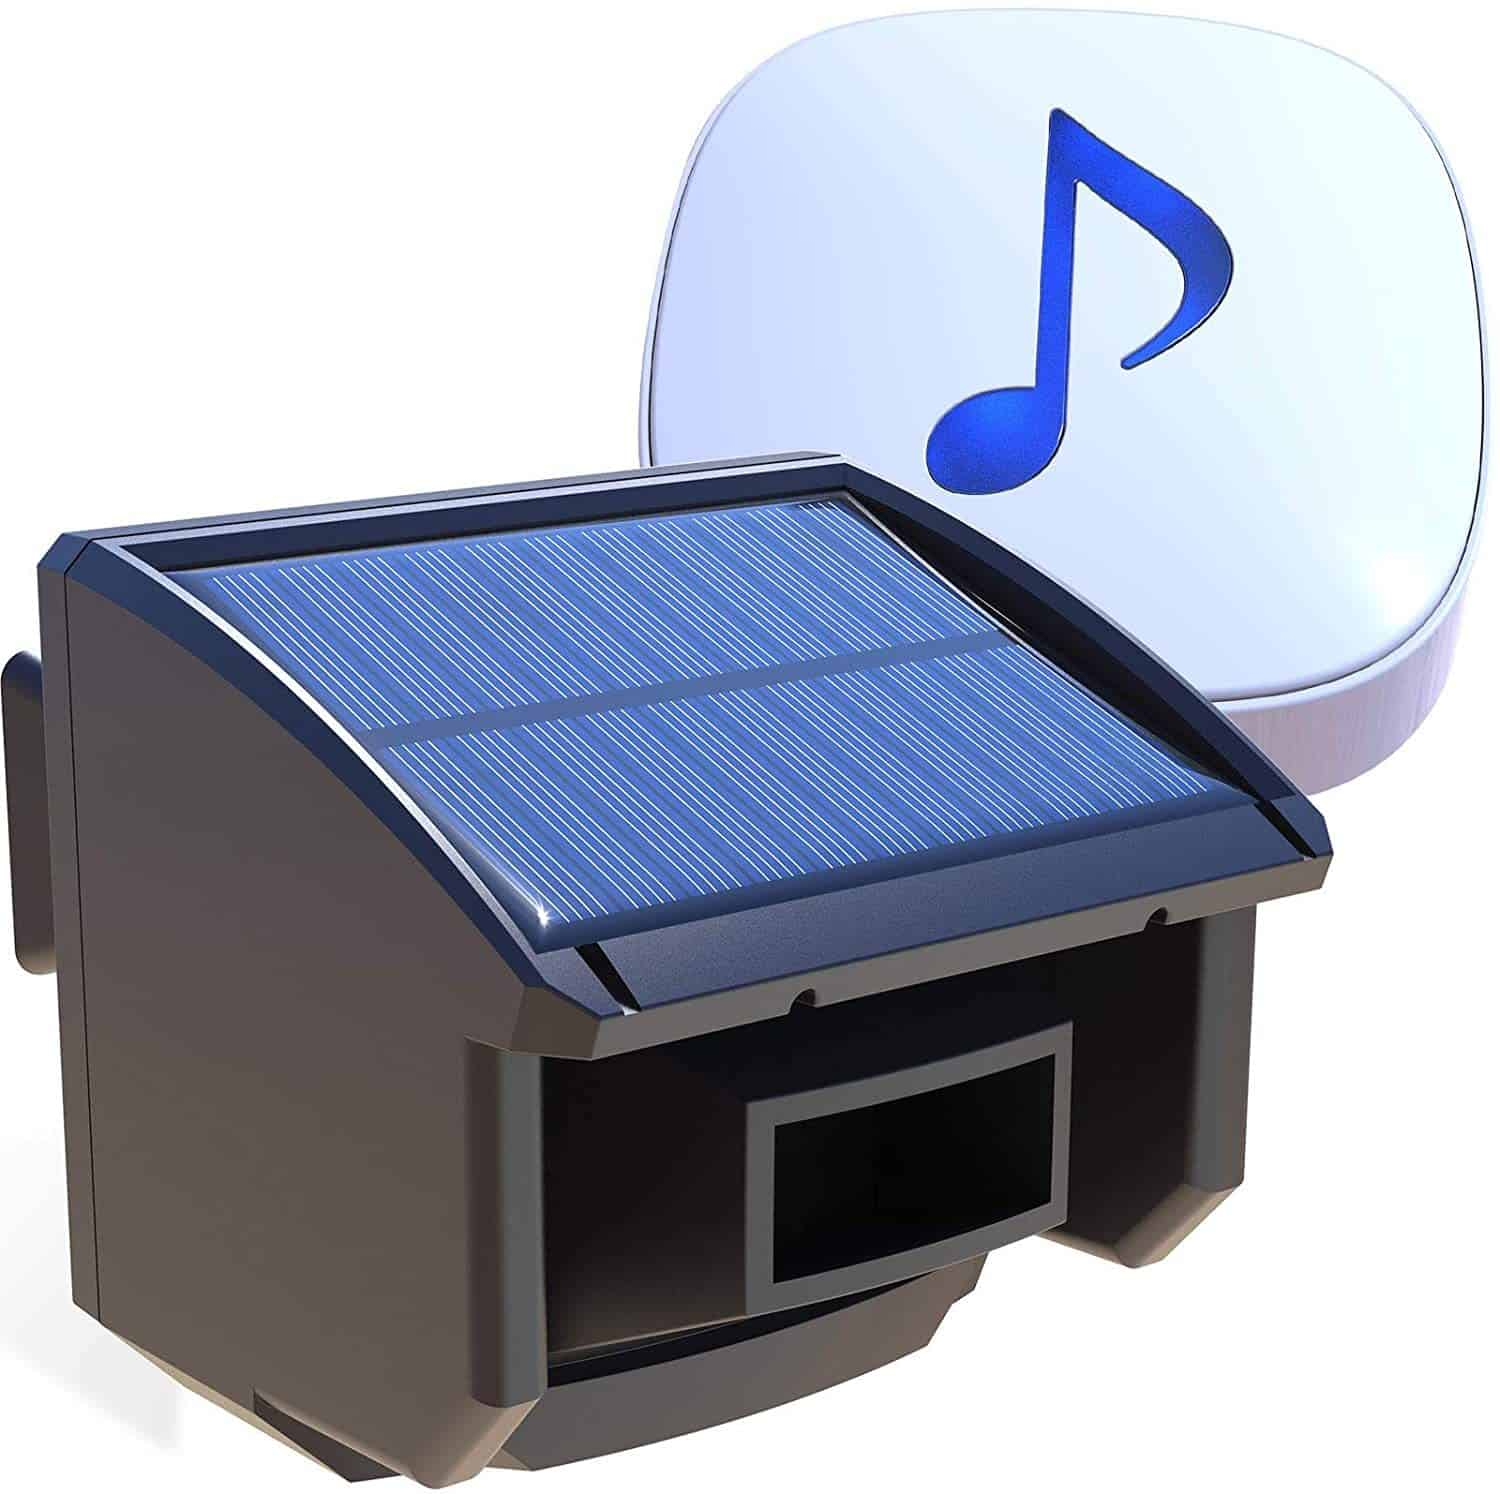 Htzsafe Outdoor Solar Powered Alarm System